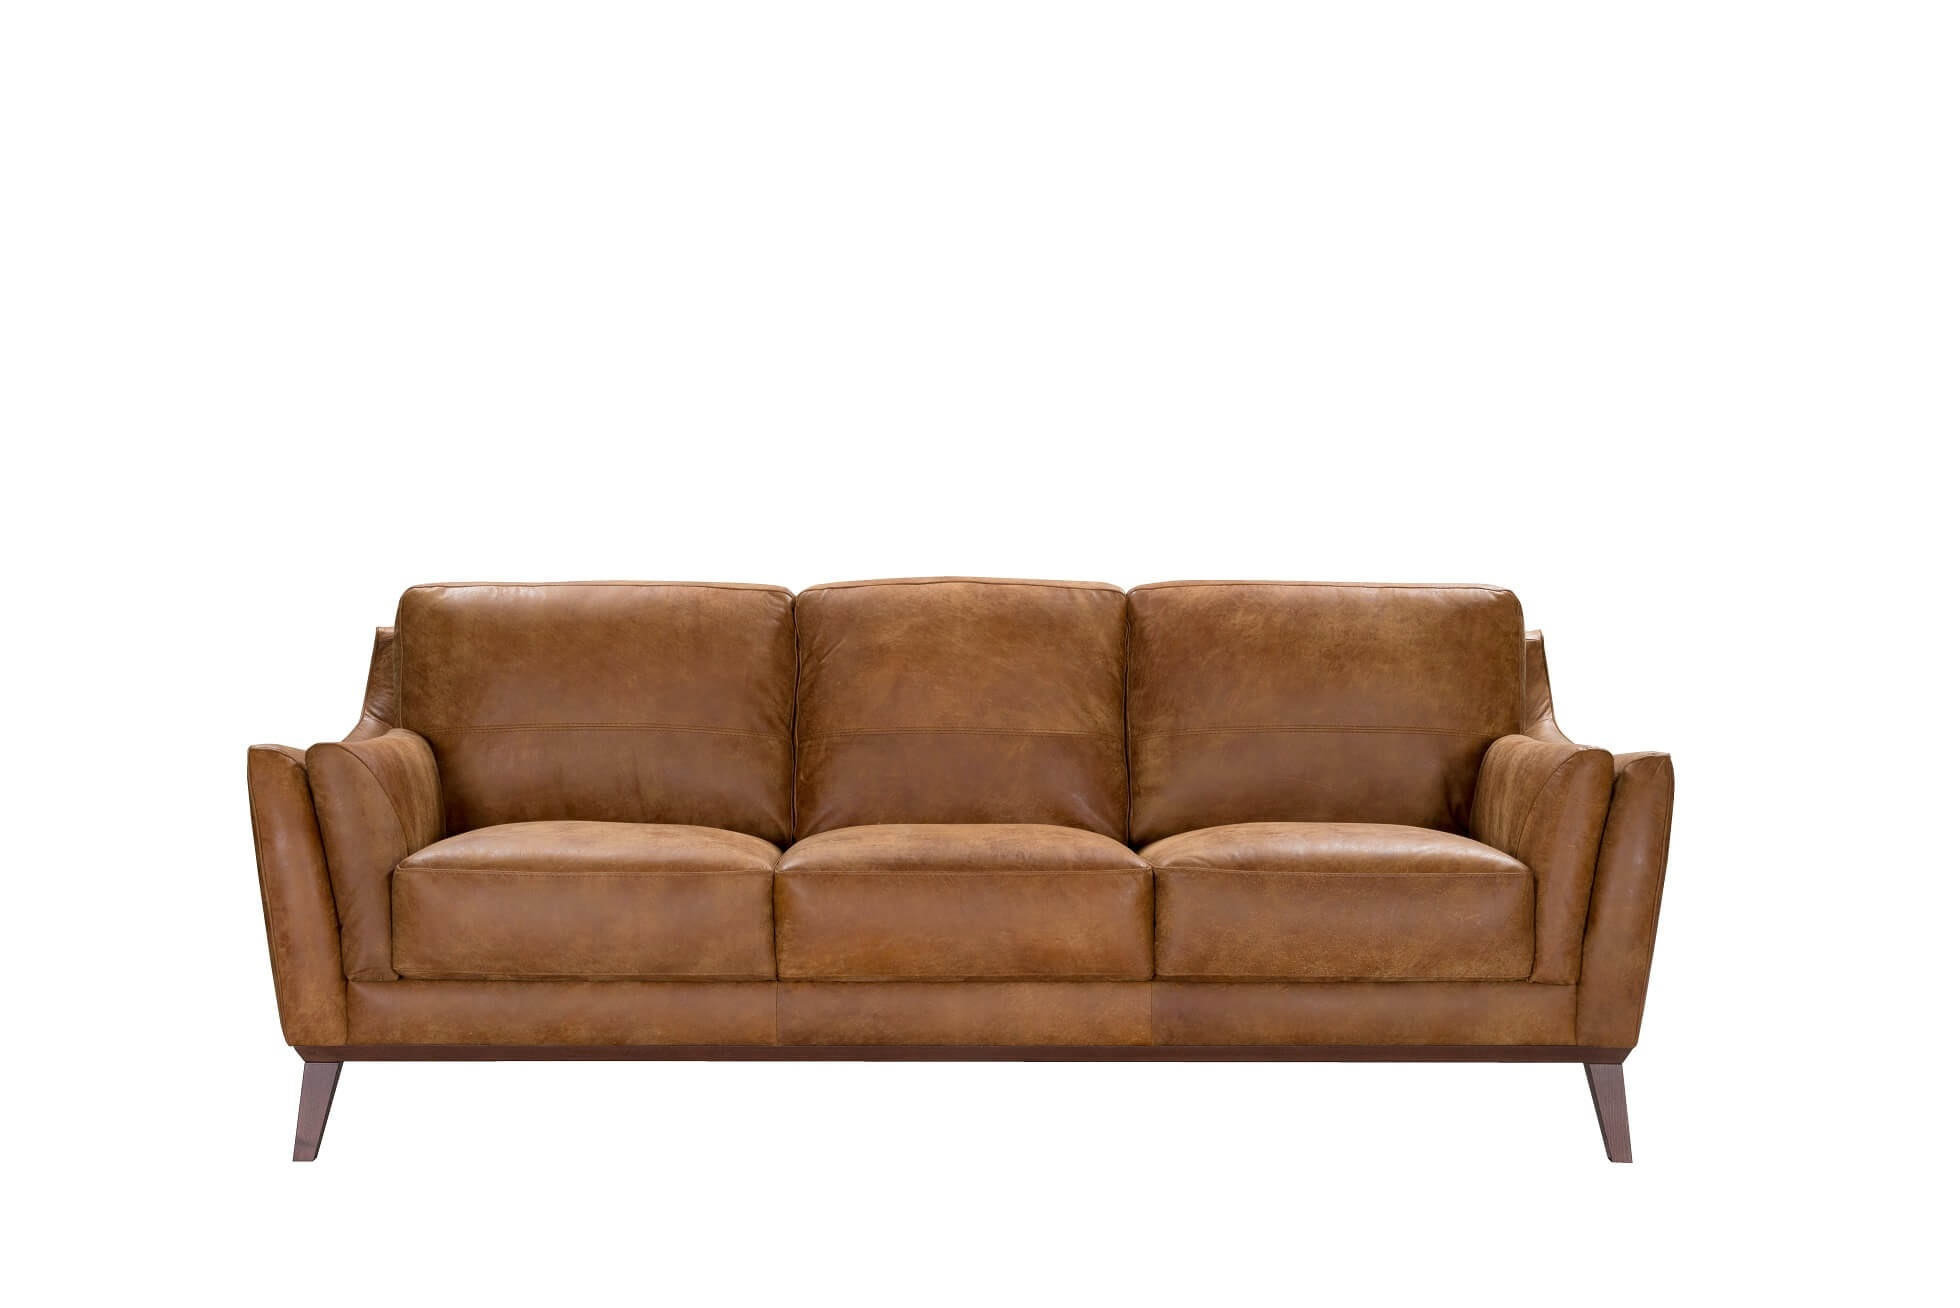 Dember Vintage Brown Italian Leather Sofa - Made in Italy - USA ...